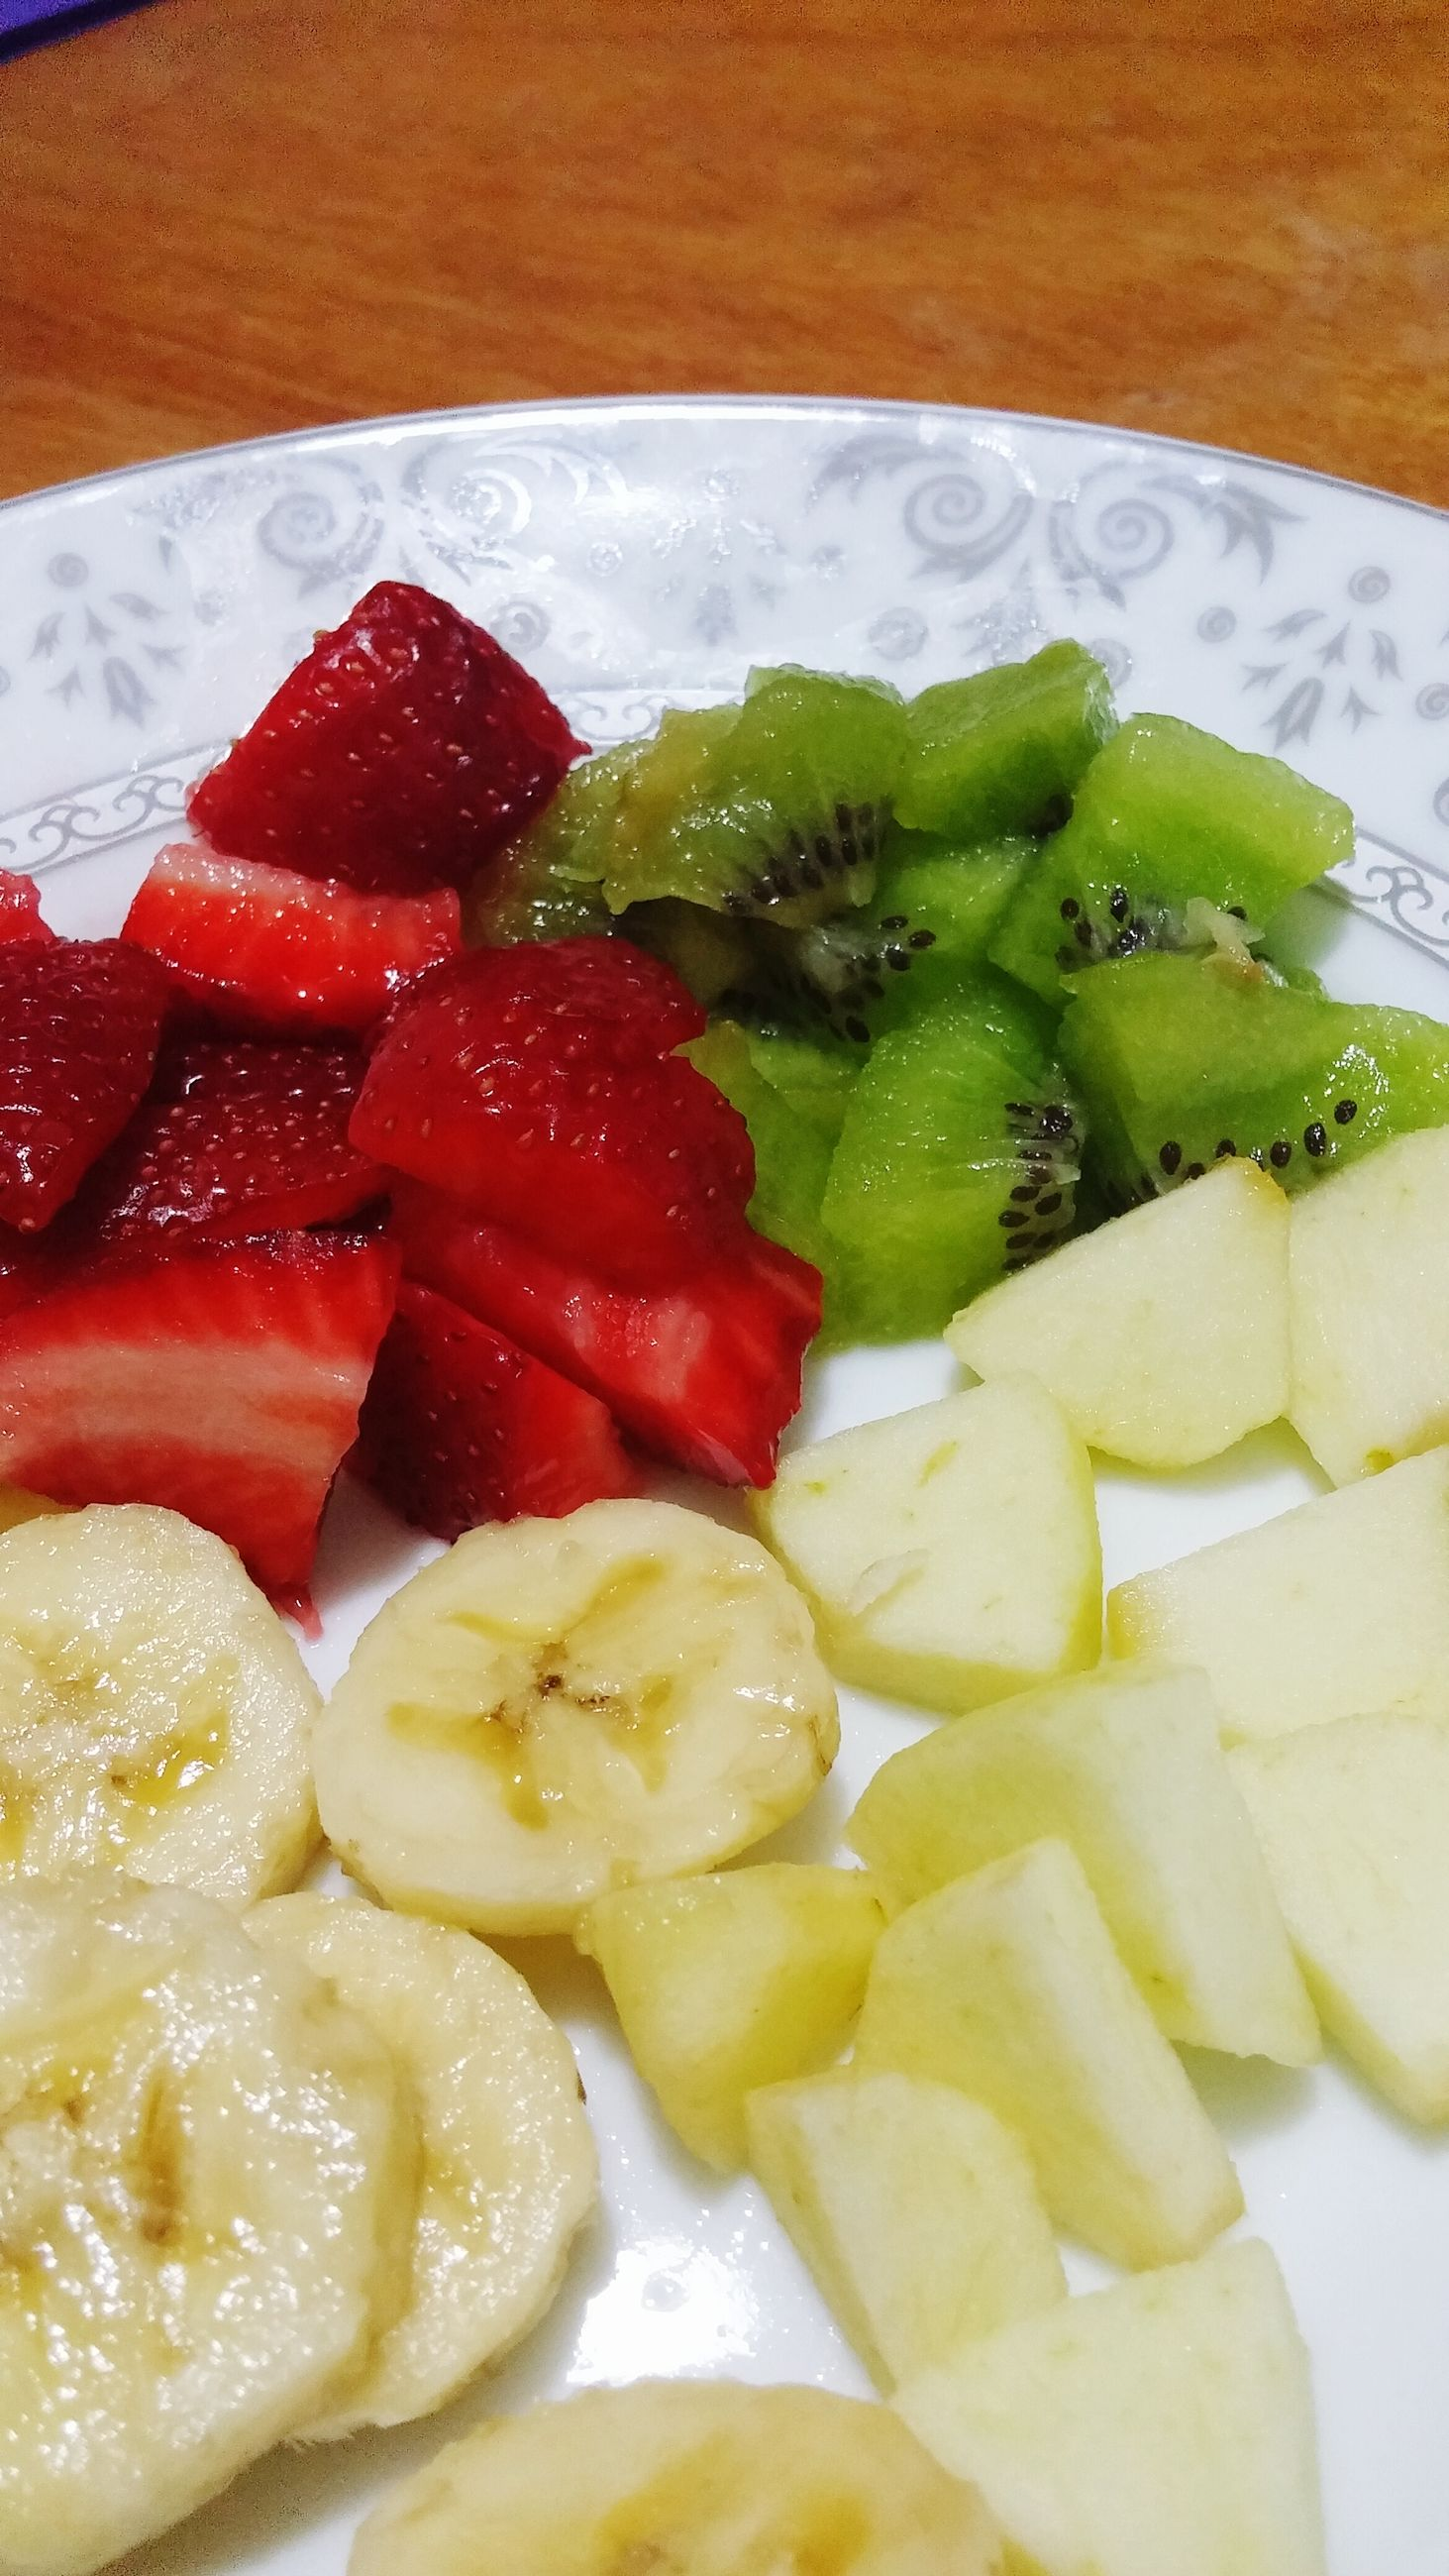 food and drink, food, freshness, indoors, ready-to-eat, still life, healthy eating, plate, close-up, indulgence, serving size, slice, high angle view, meal, table, fruit, strawberry, no people, salad, temptation